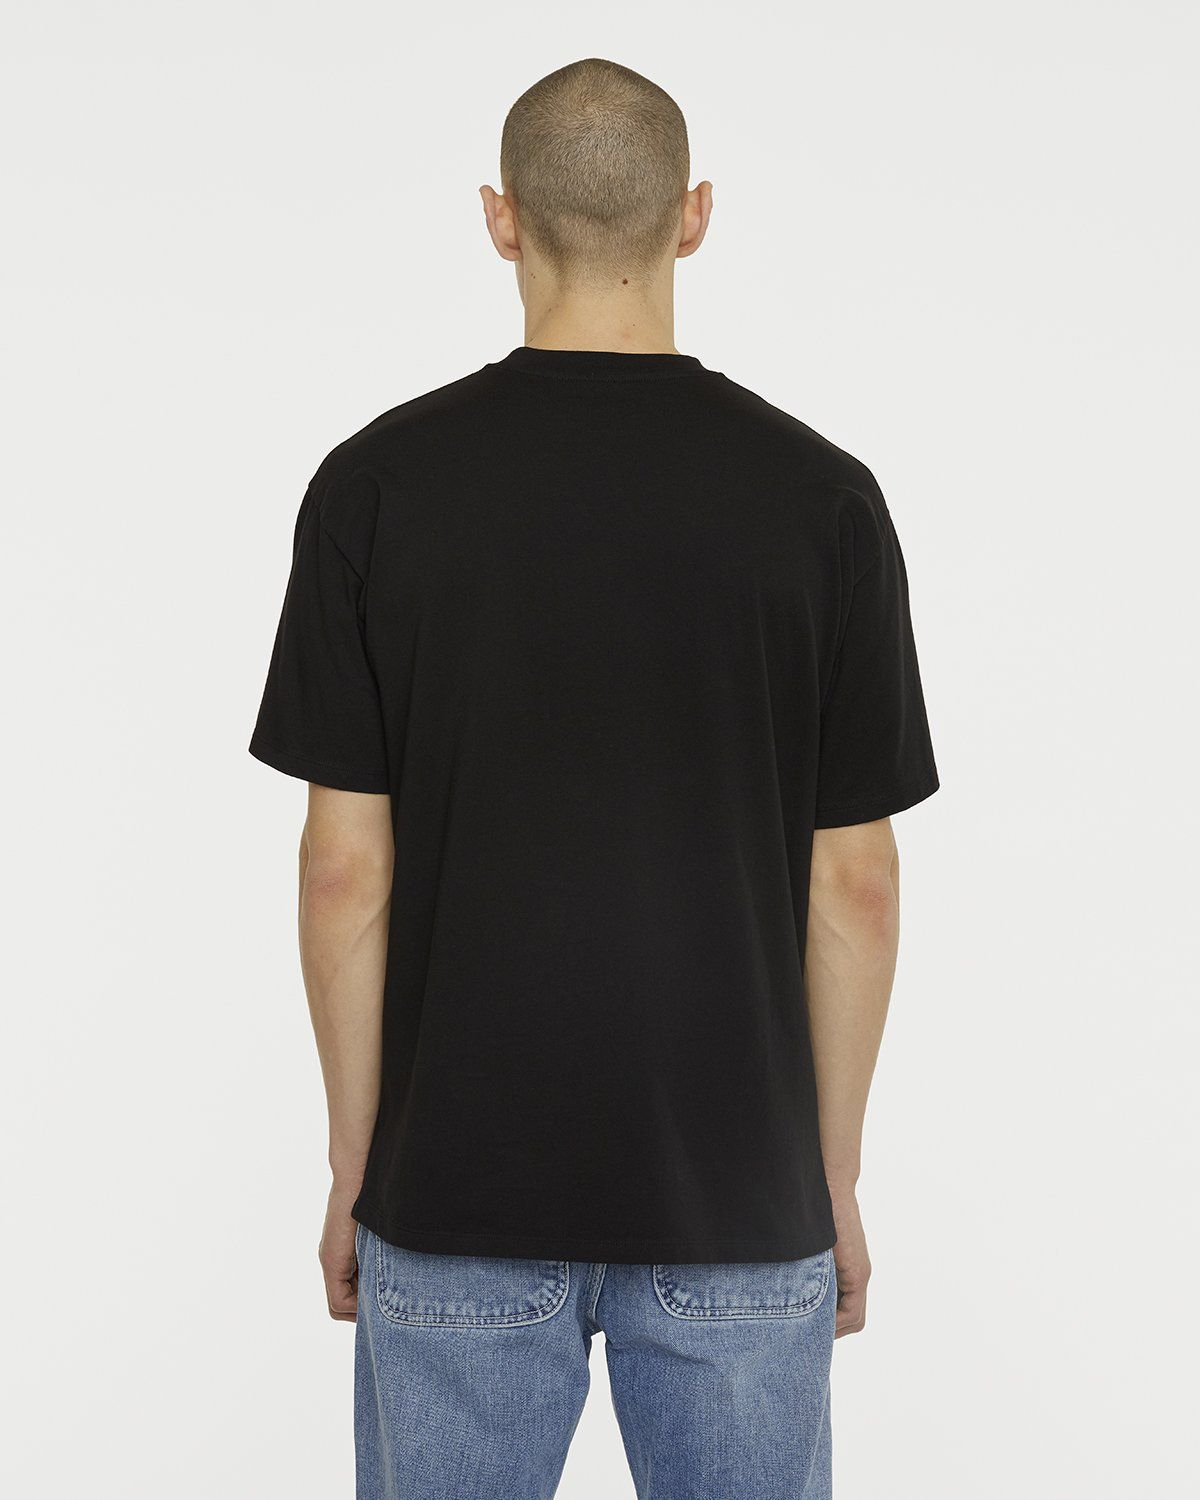 Aries - Temple Tee Black - Image 5